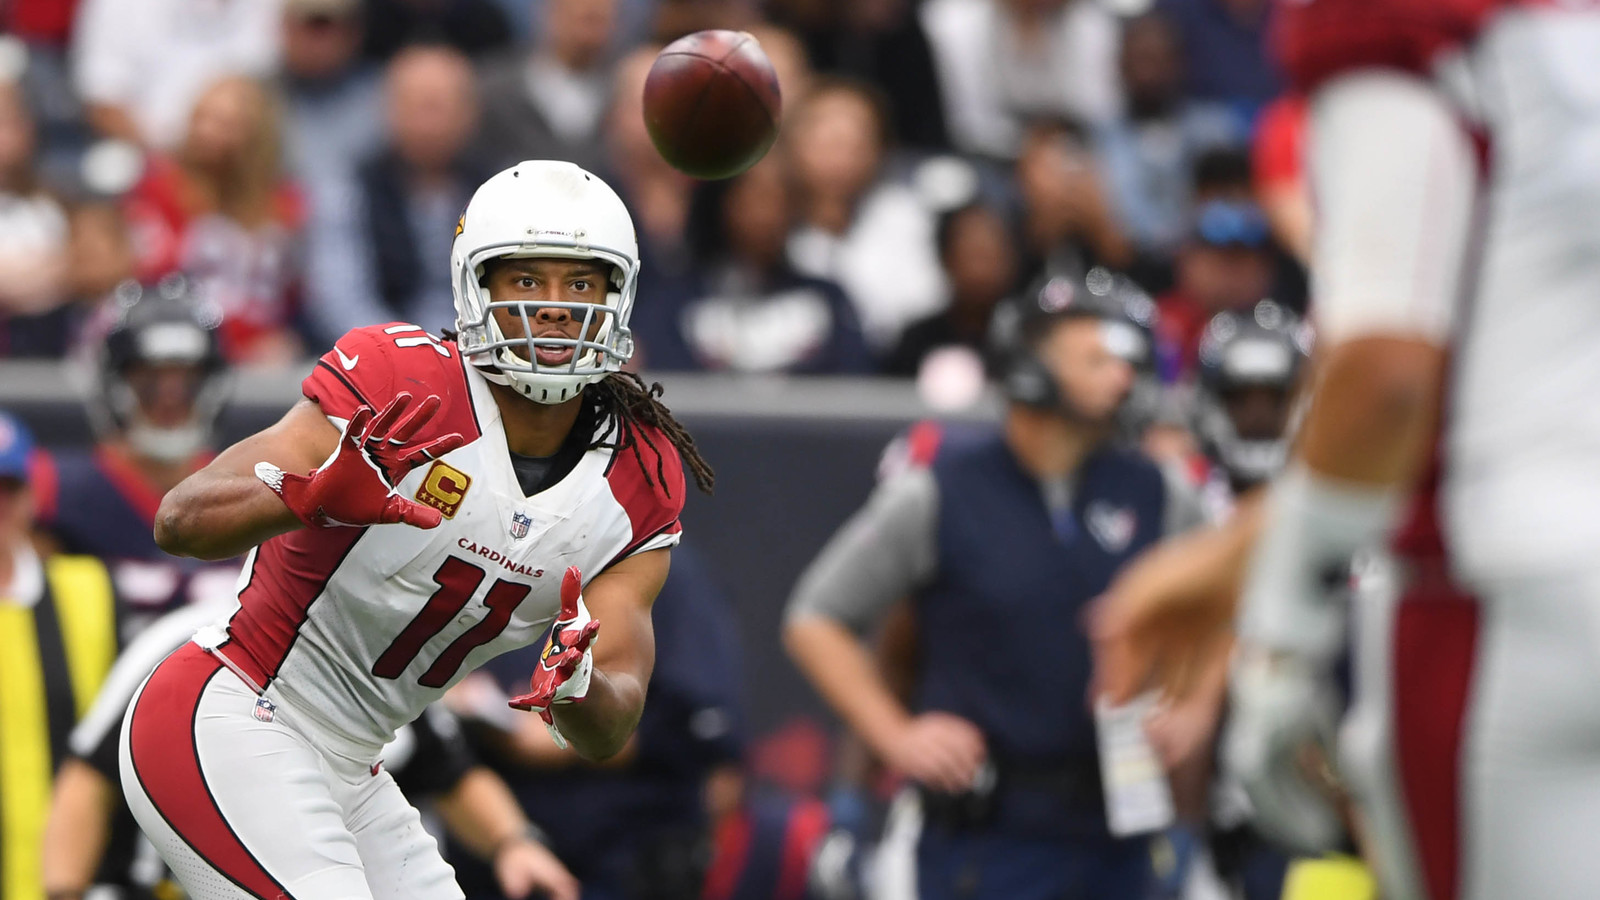 Larry Fitzgerald moves up on all time receiving list